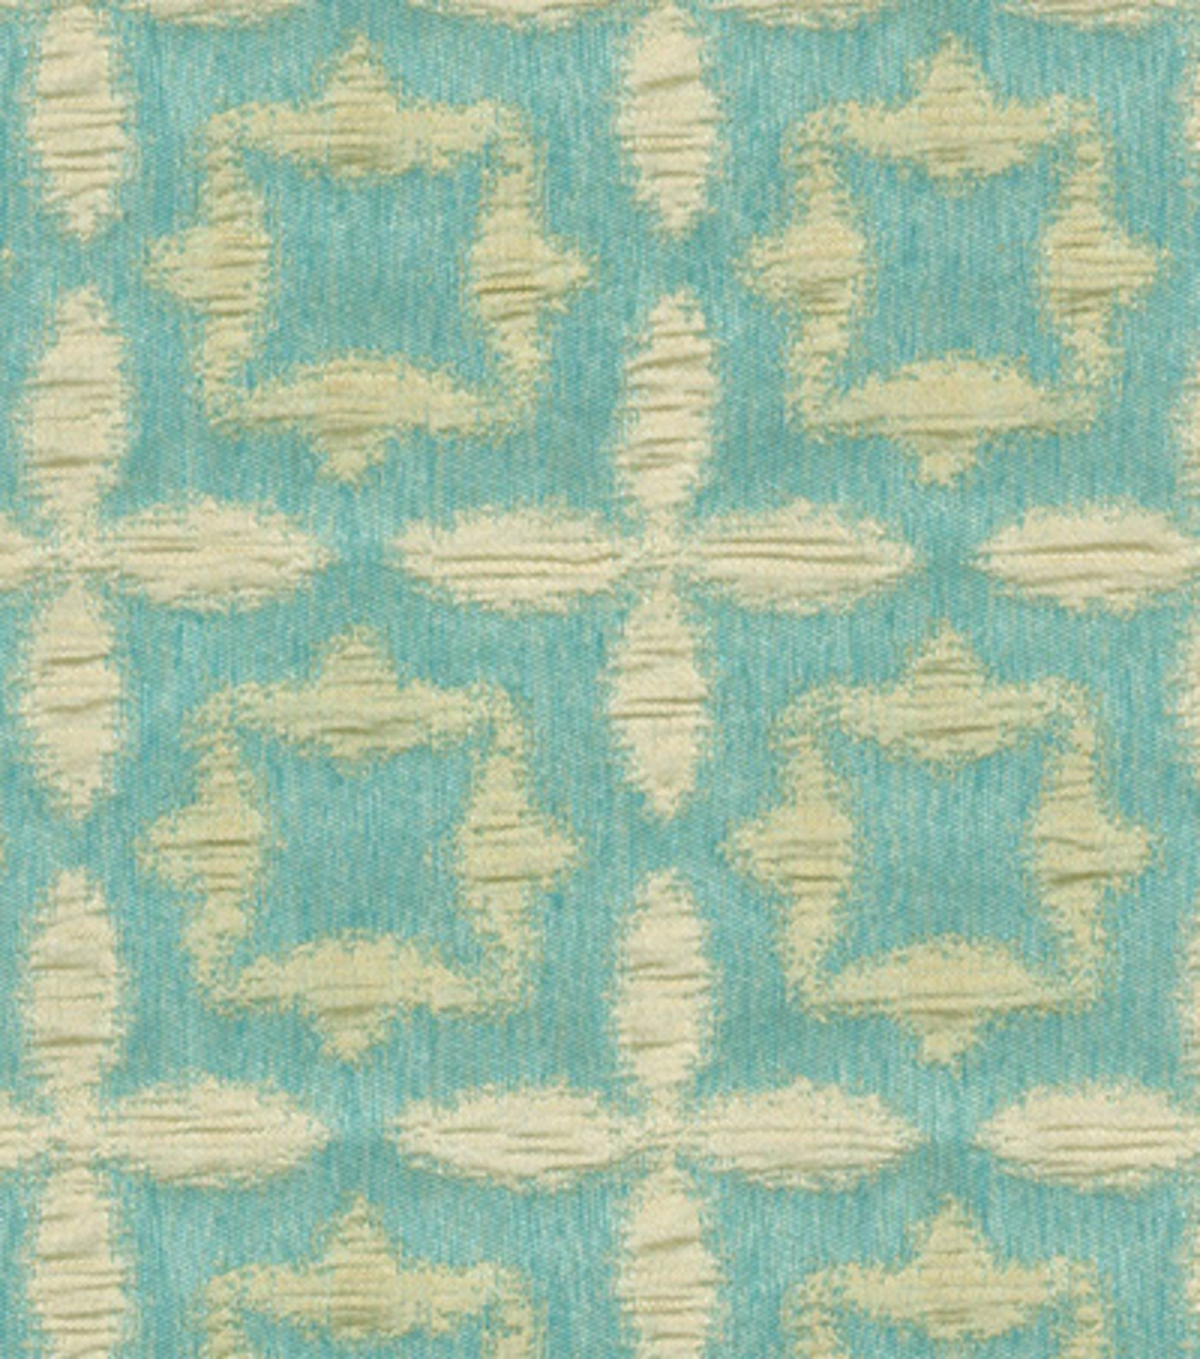 Waverly Upholstery Fabric-Stardust/Aquamarine